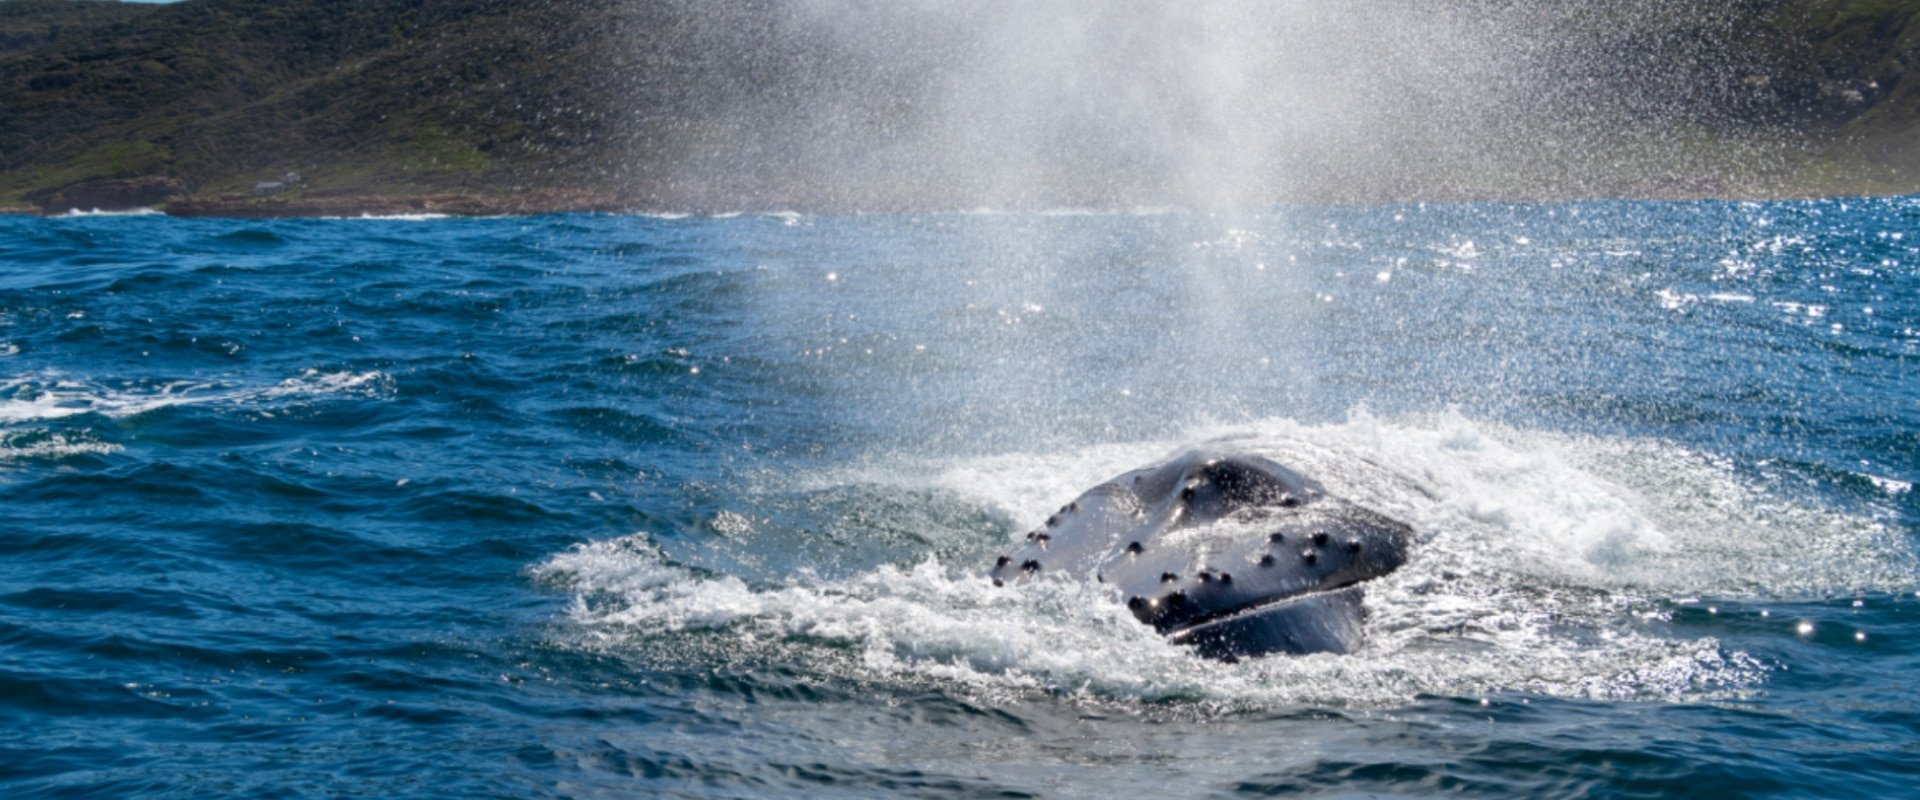 Delight in phenomenal whale watching